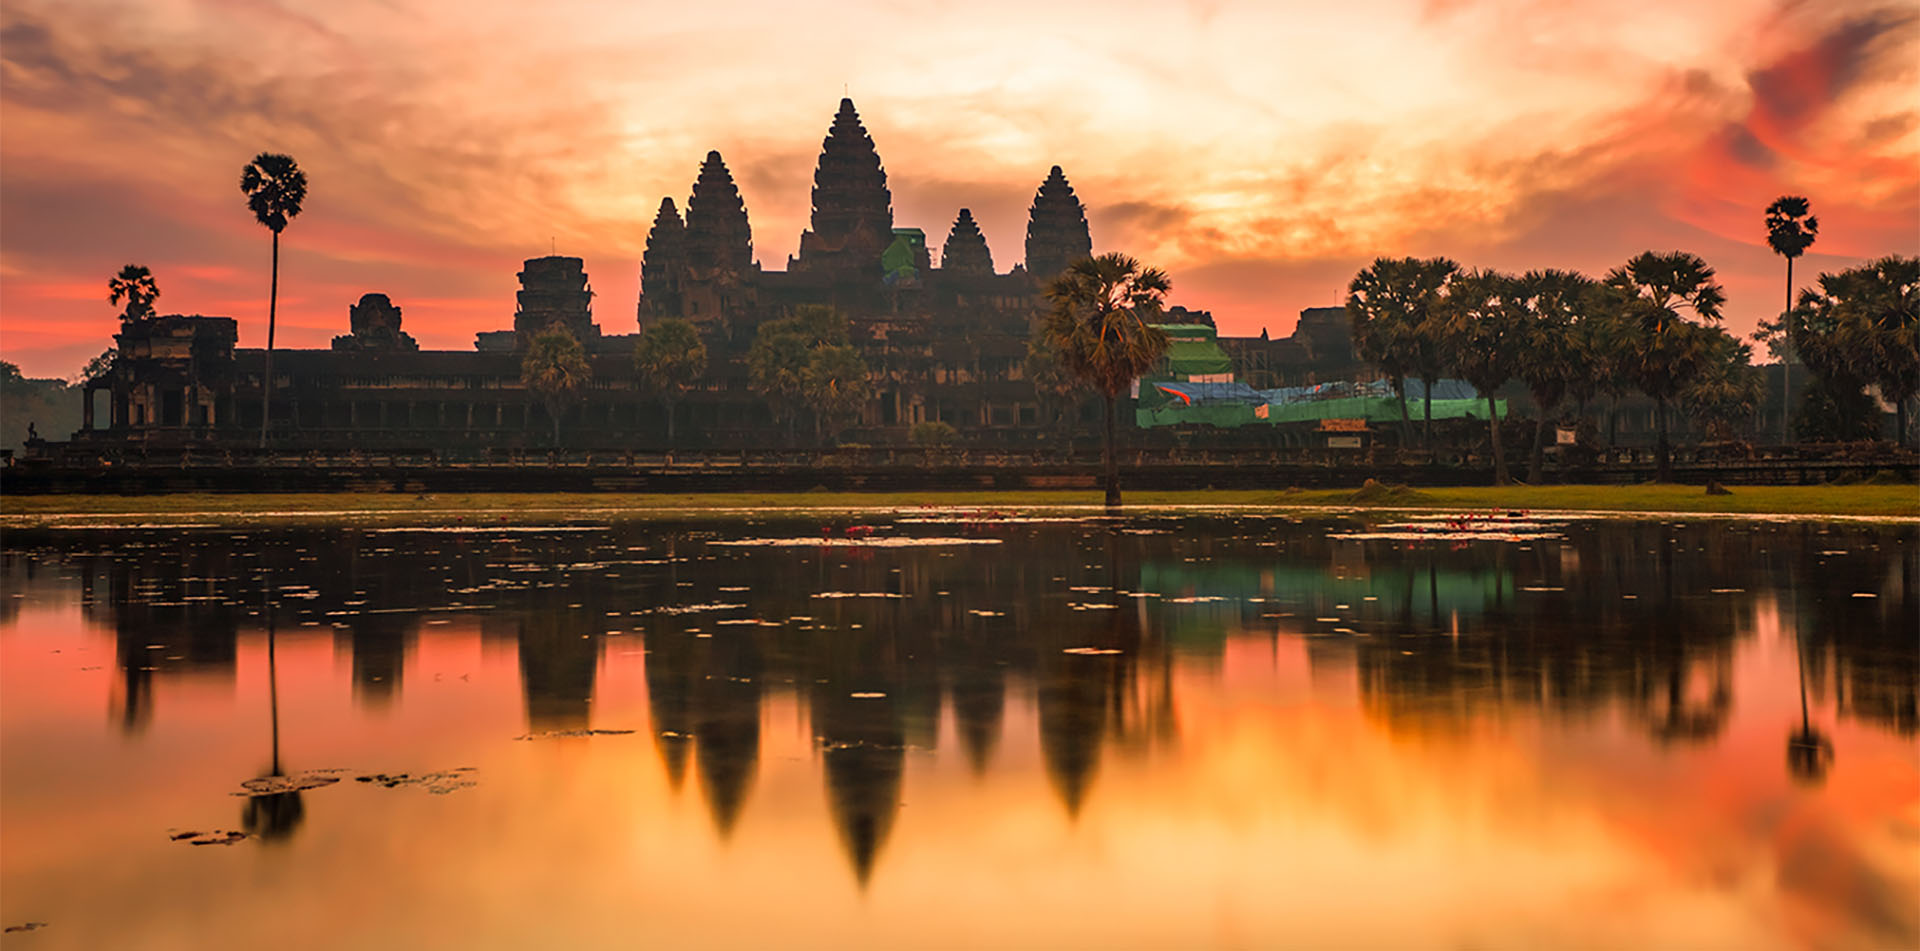 Angkor Wat sunrise at Siem Reap, Cambodia